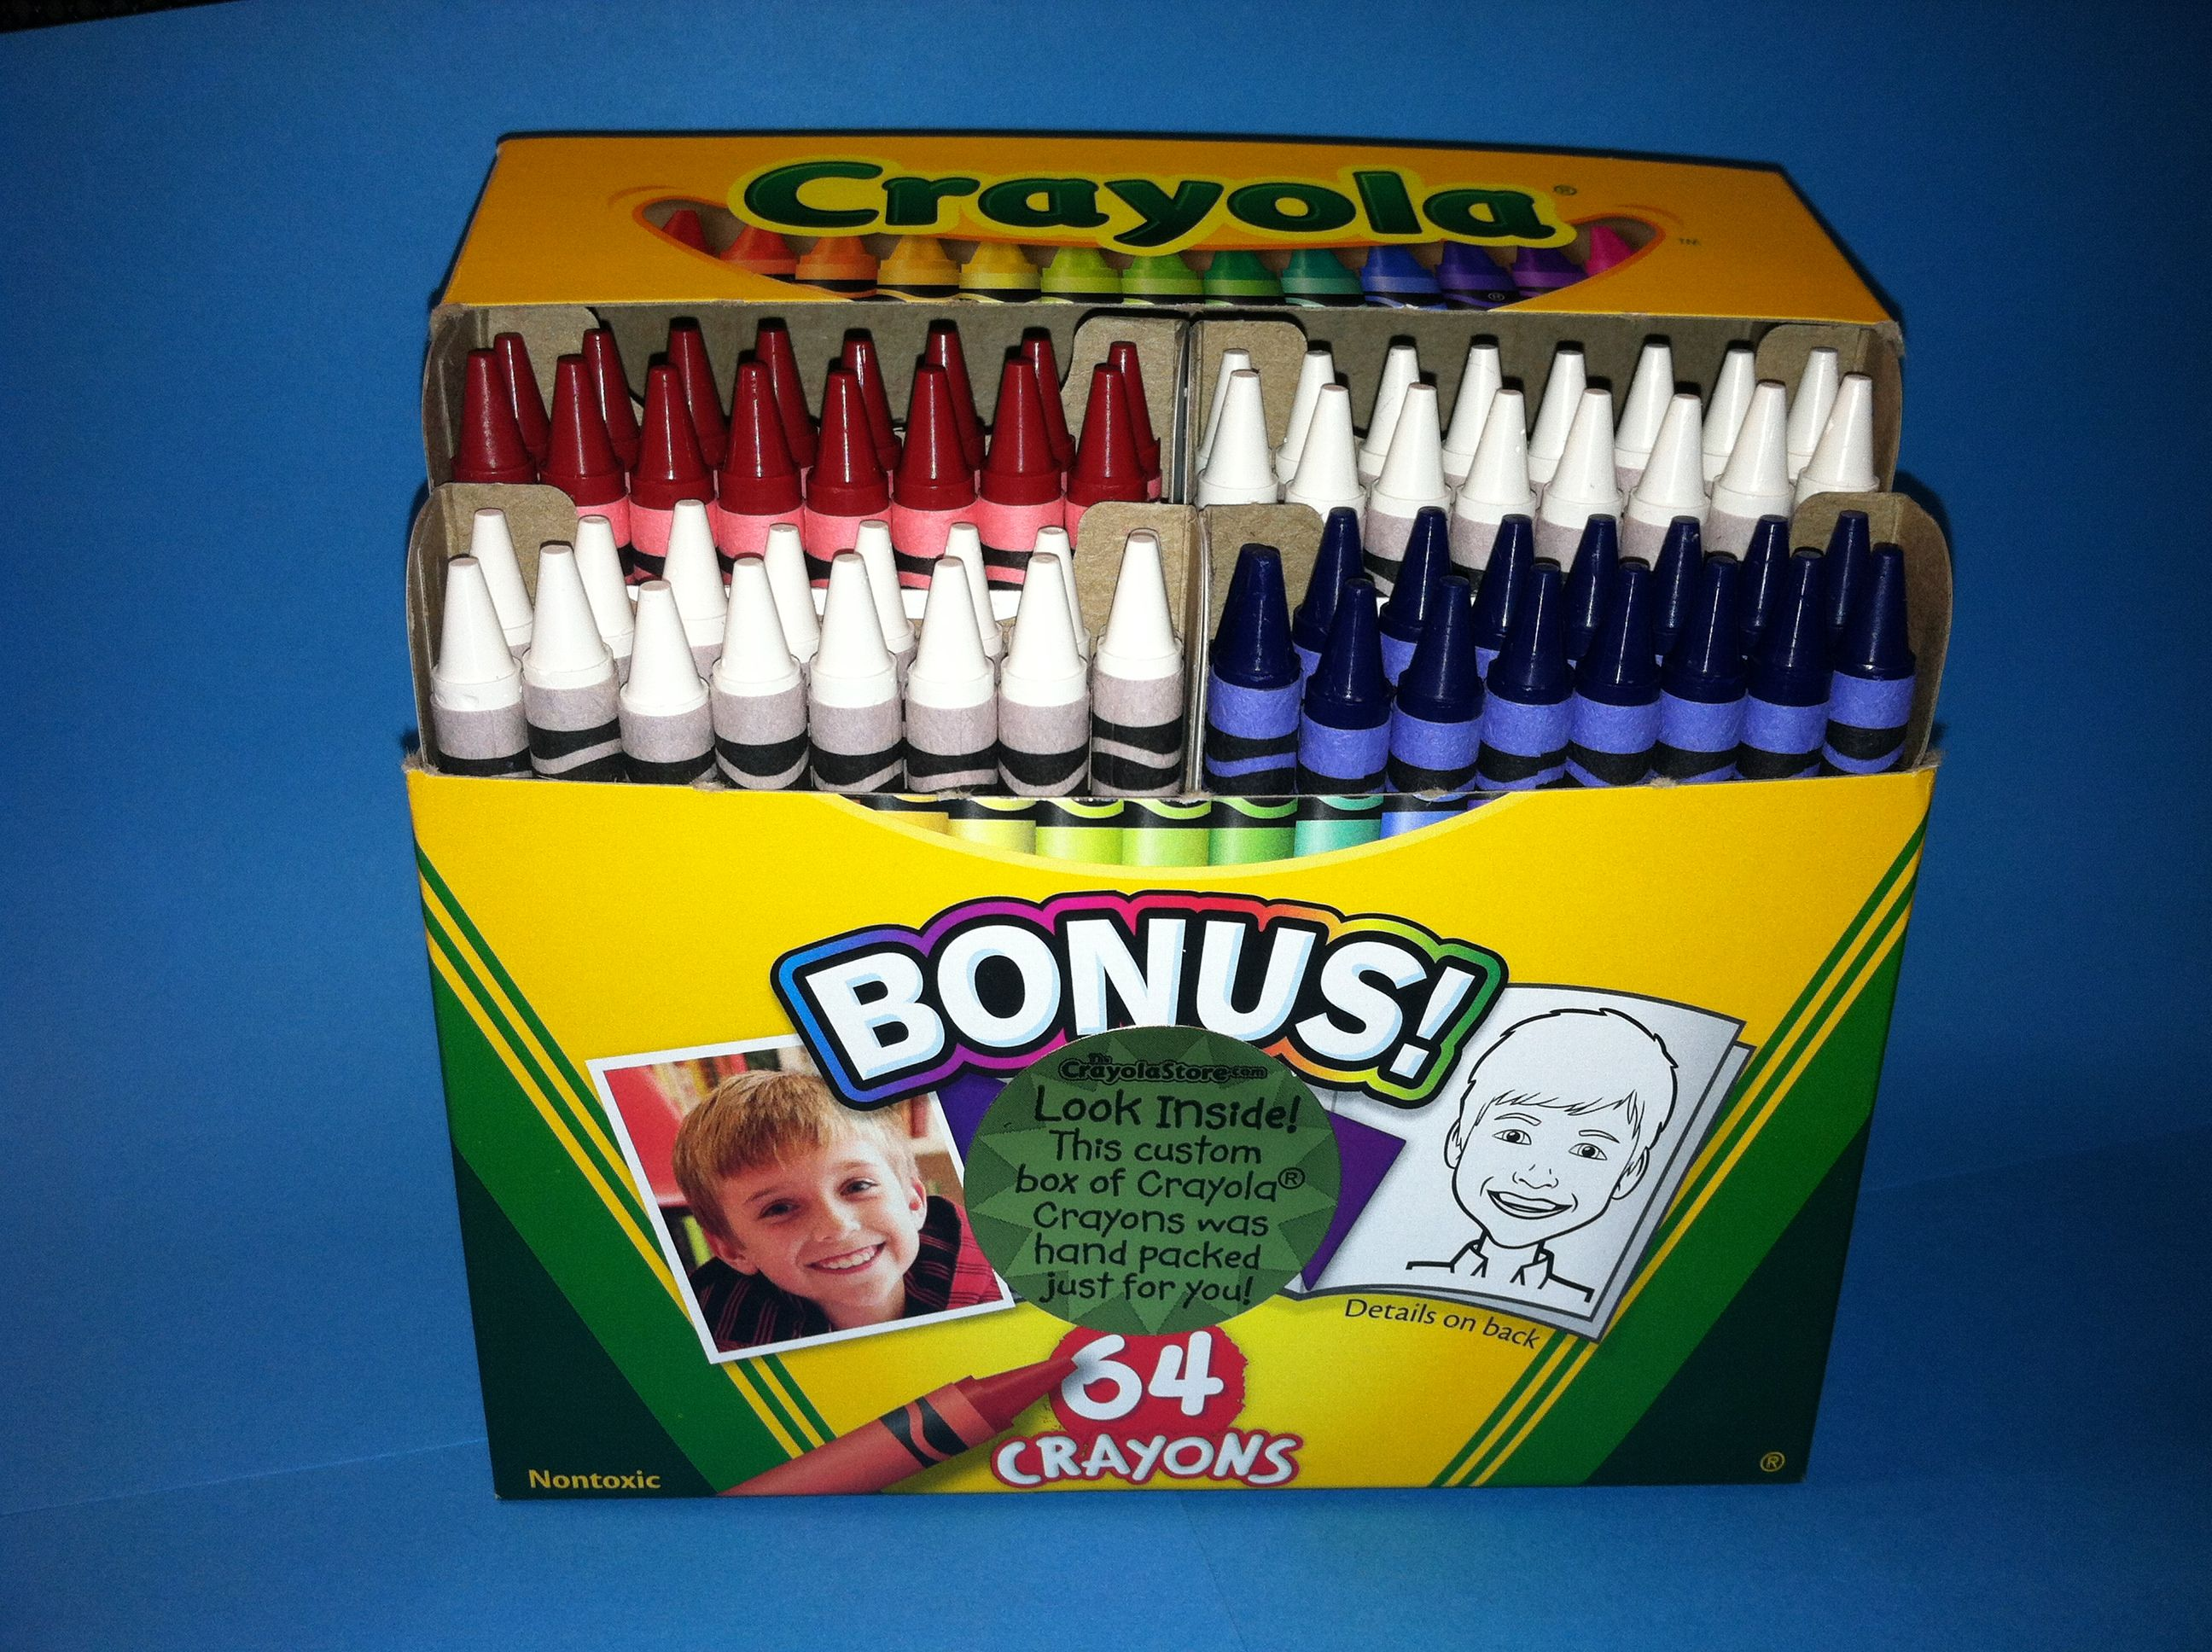 Buy a custom box of red white and blue crayola